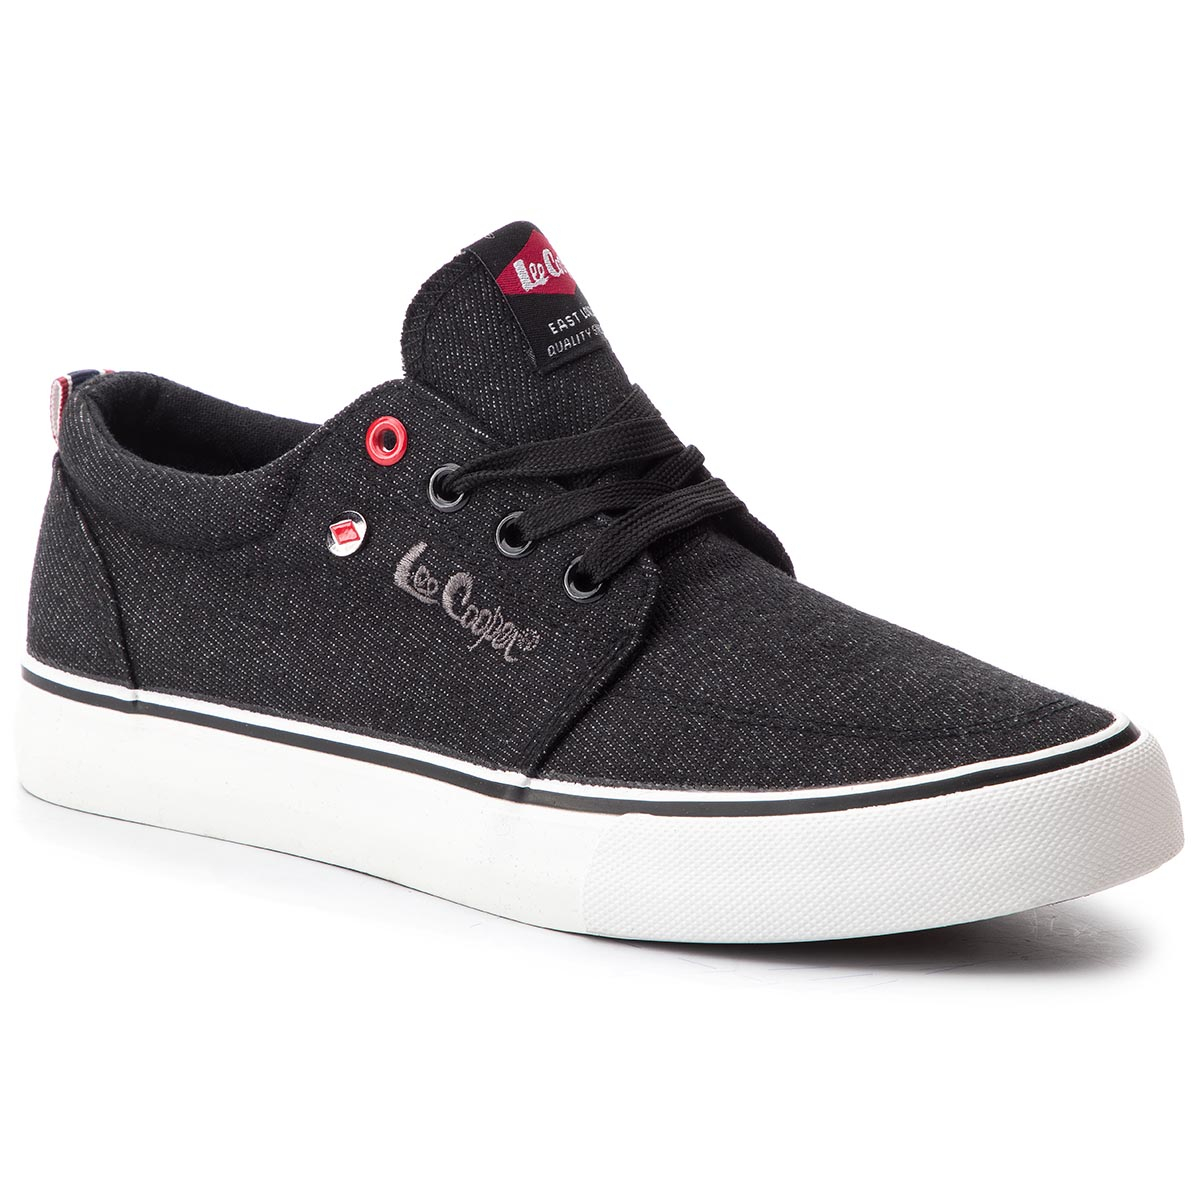 Teniși Lee Cooper - Lcw-19-530-062 Black imagine epantofi.ro 2021